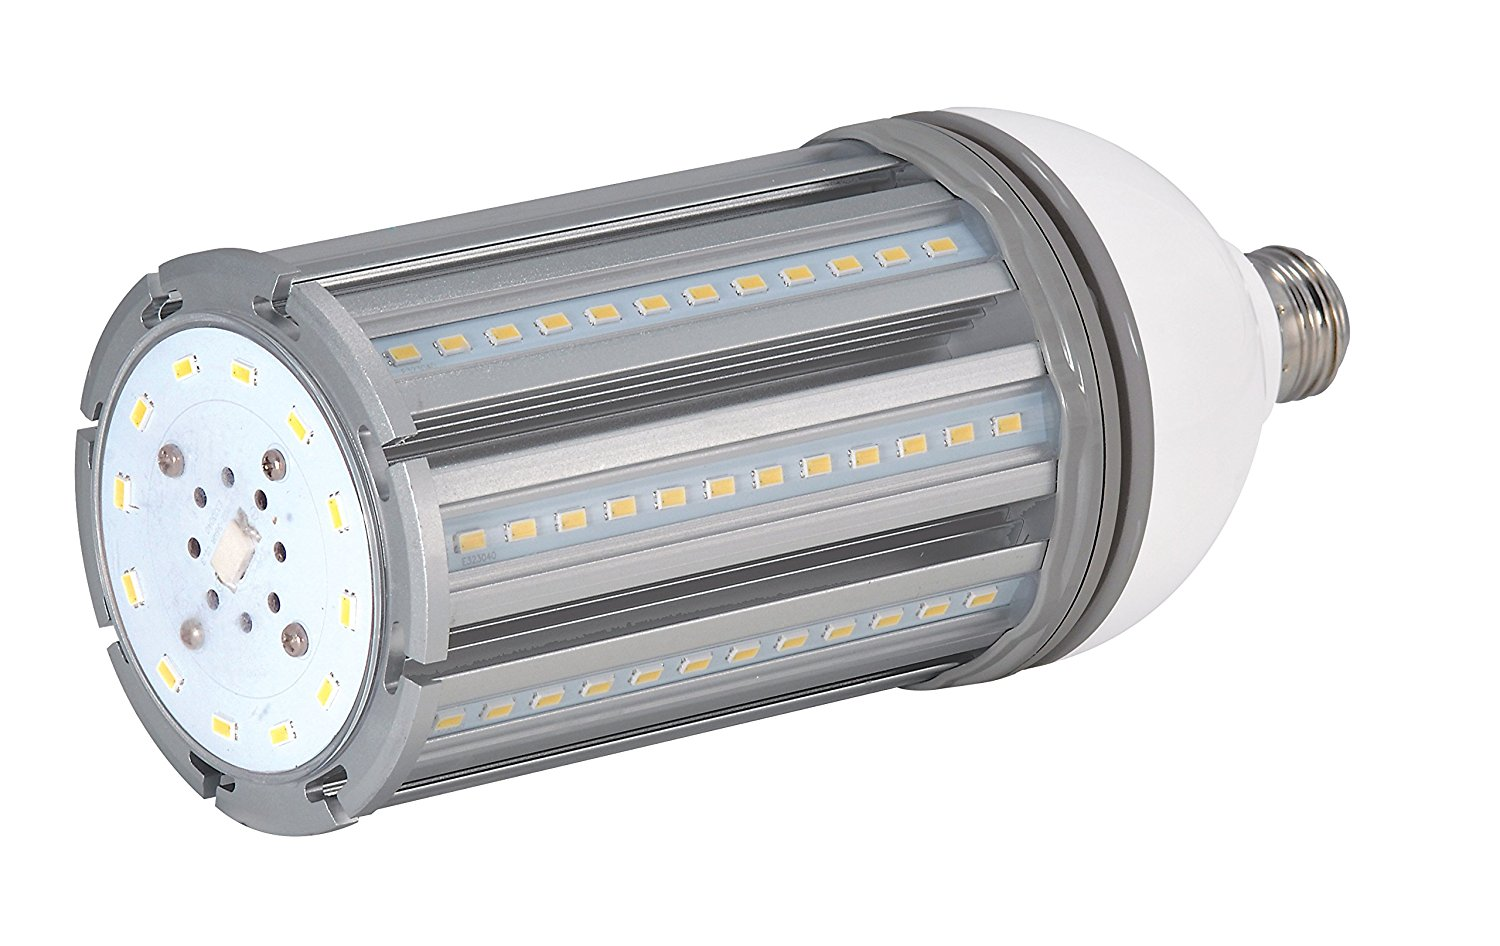 Satco S9392 5000K Medium Base 100-277V 36W LED HID Replacement